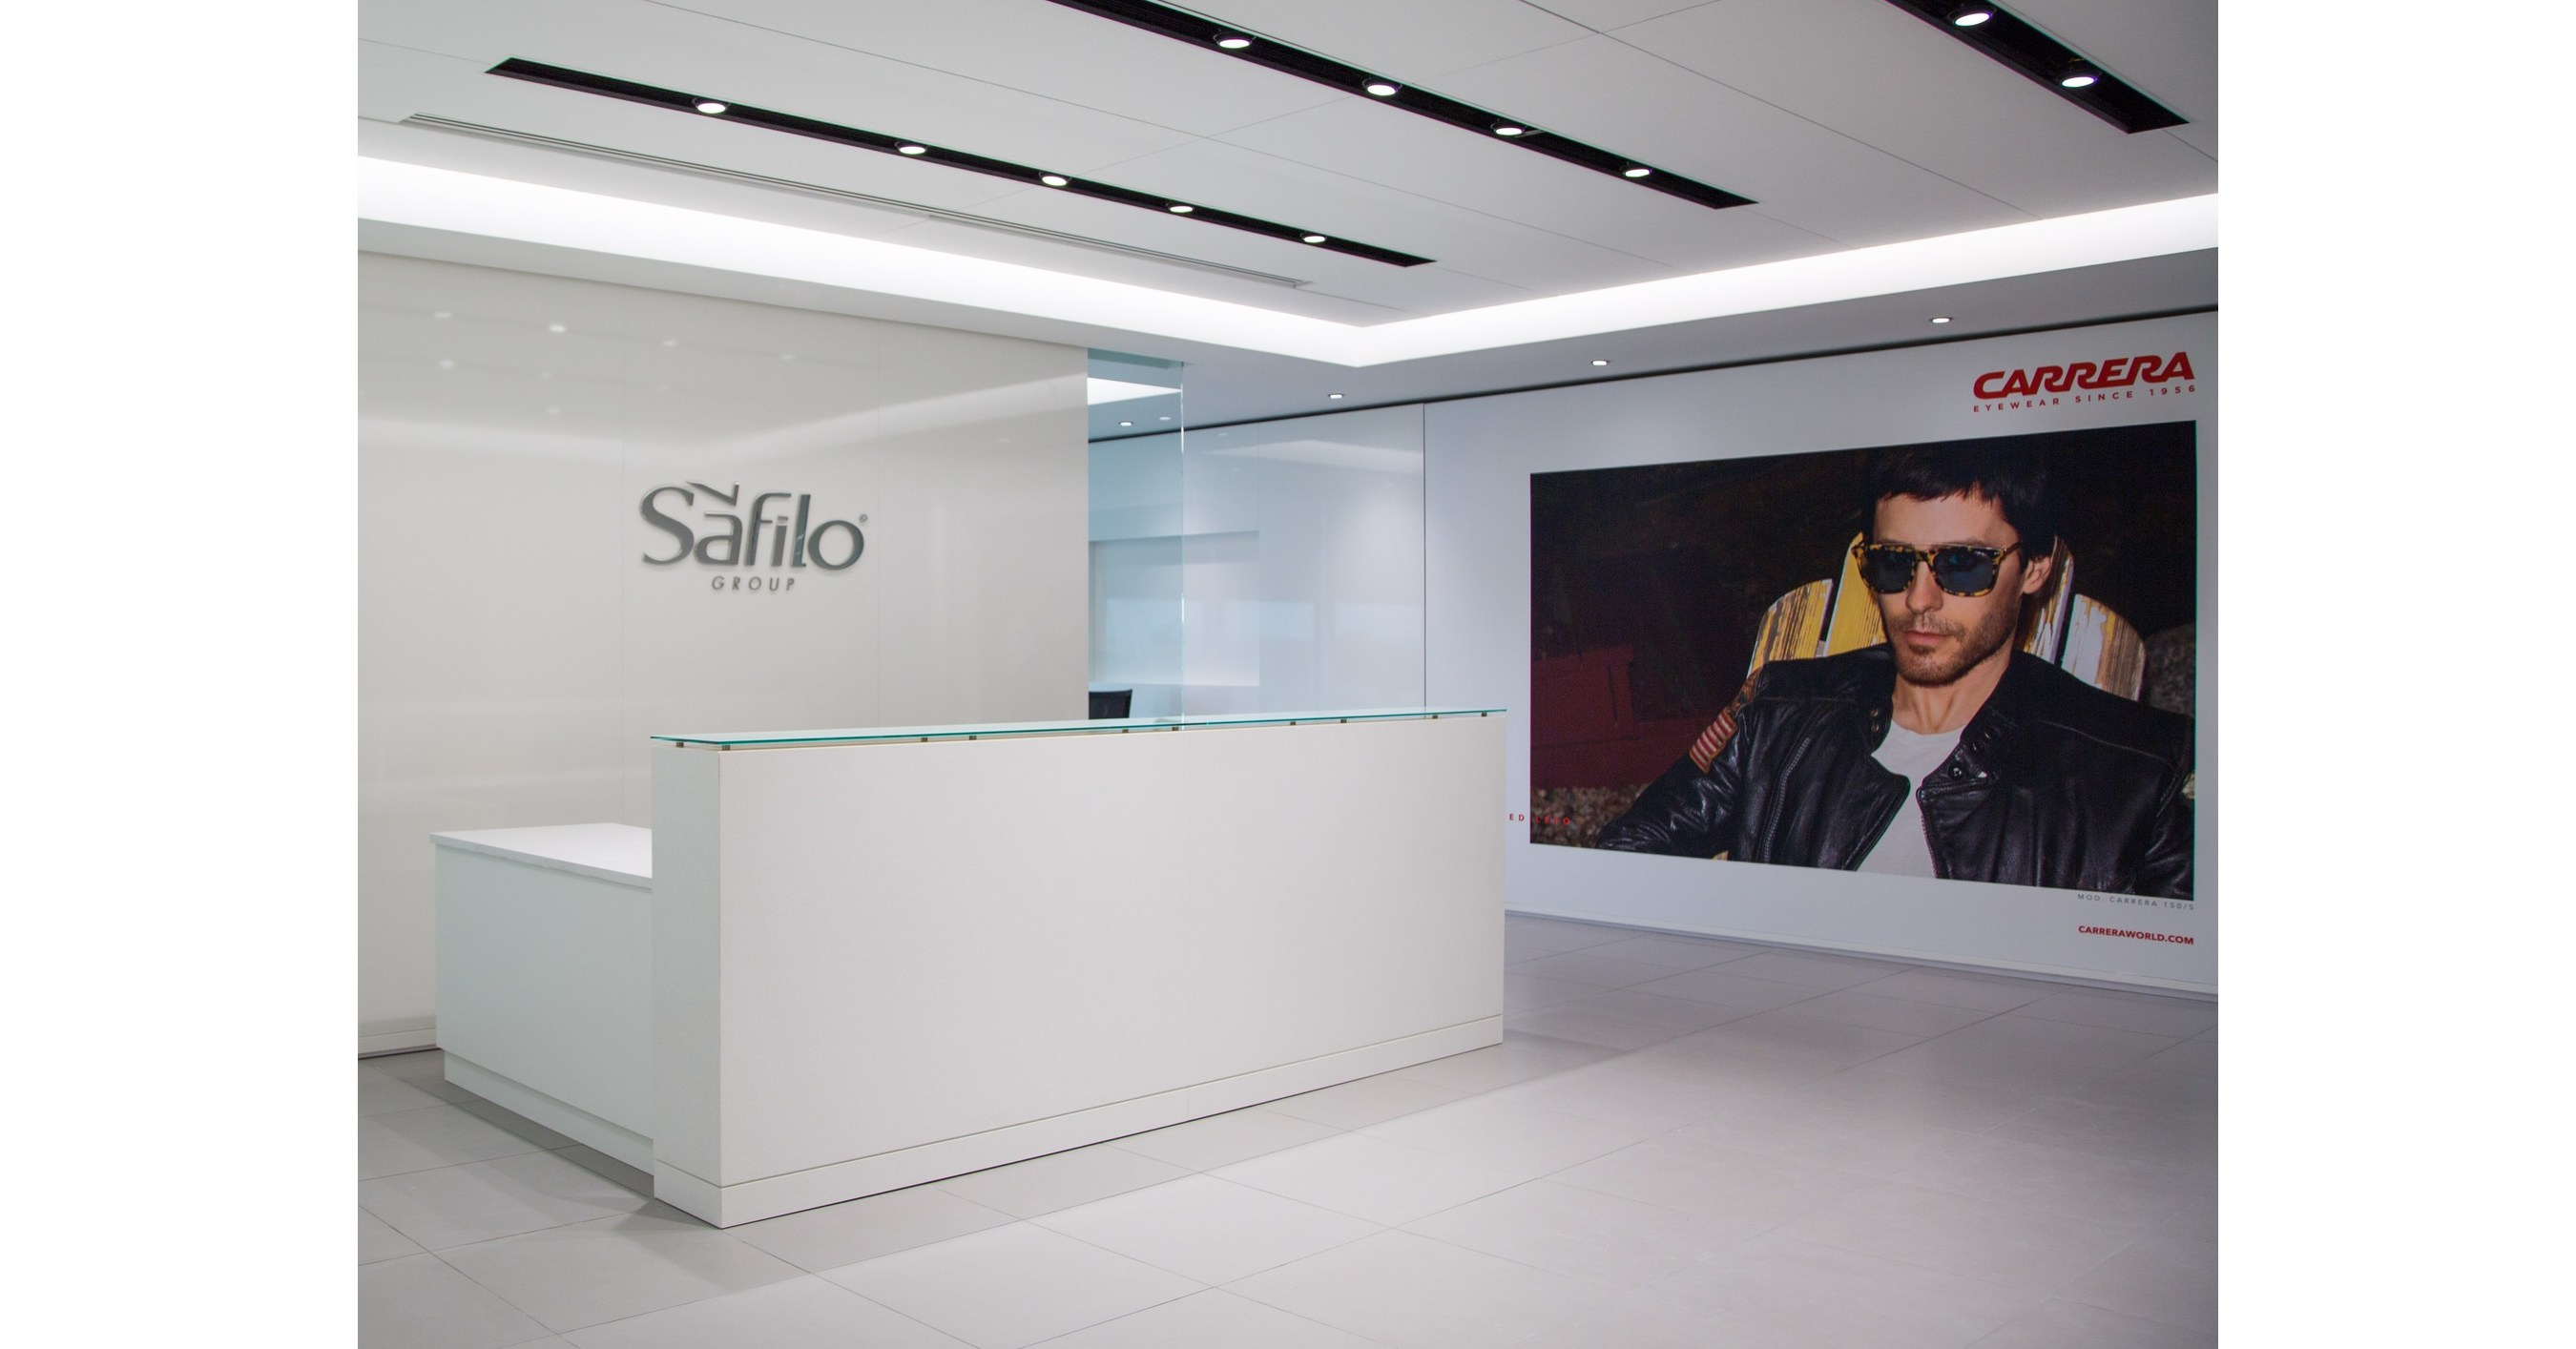 Image result for safilo group secaucus